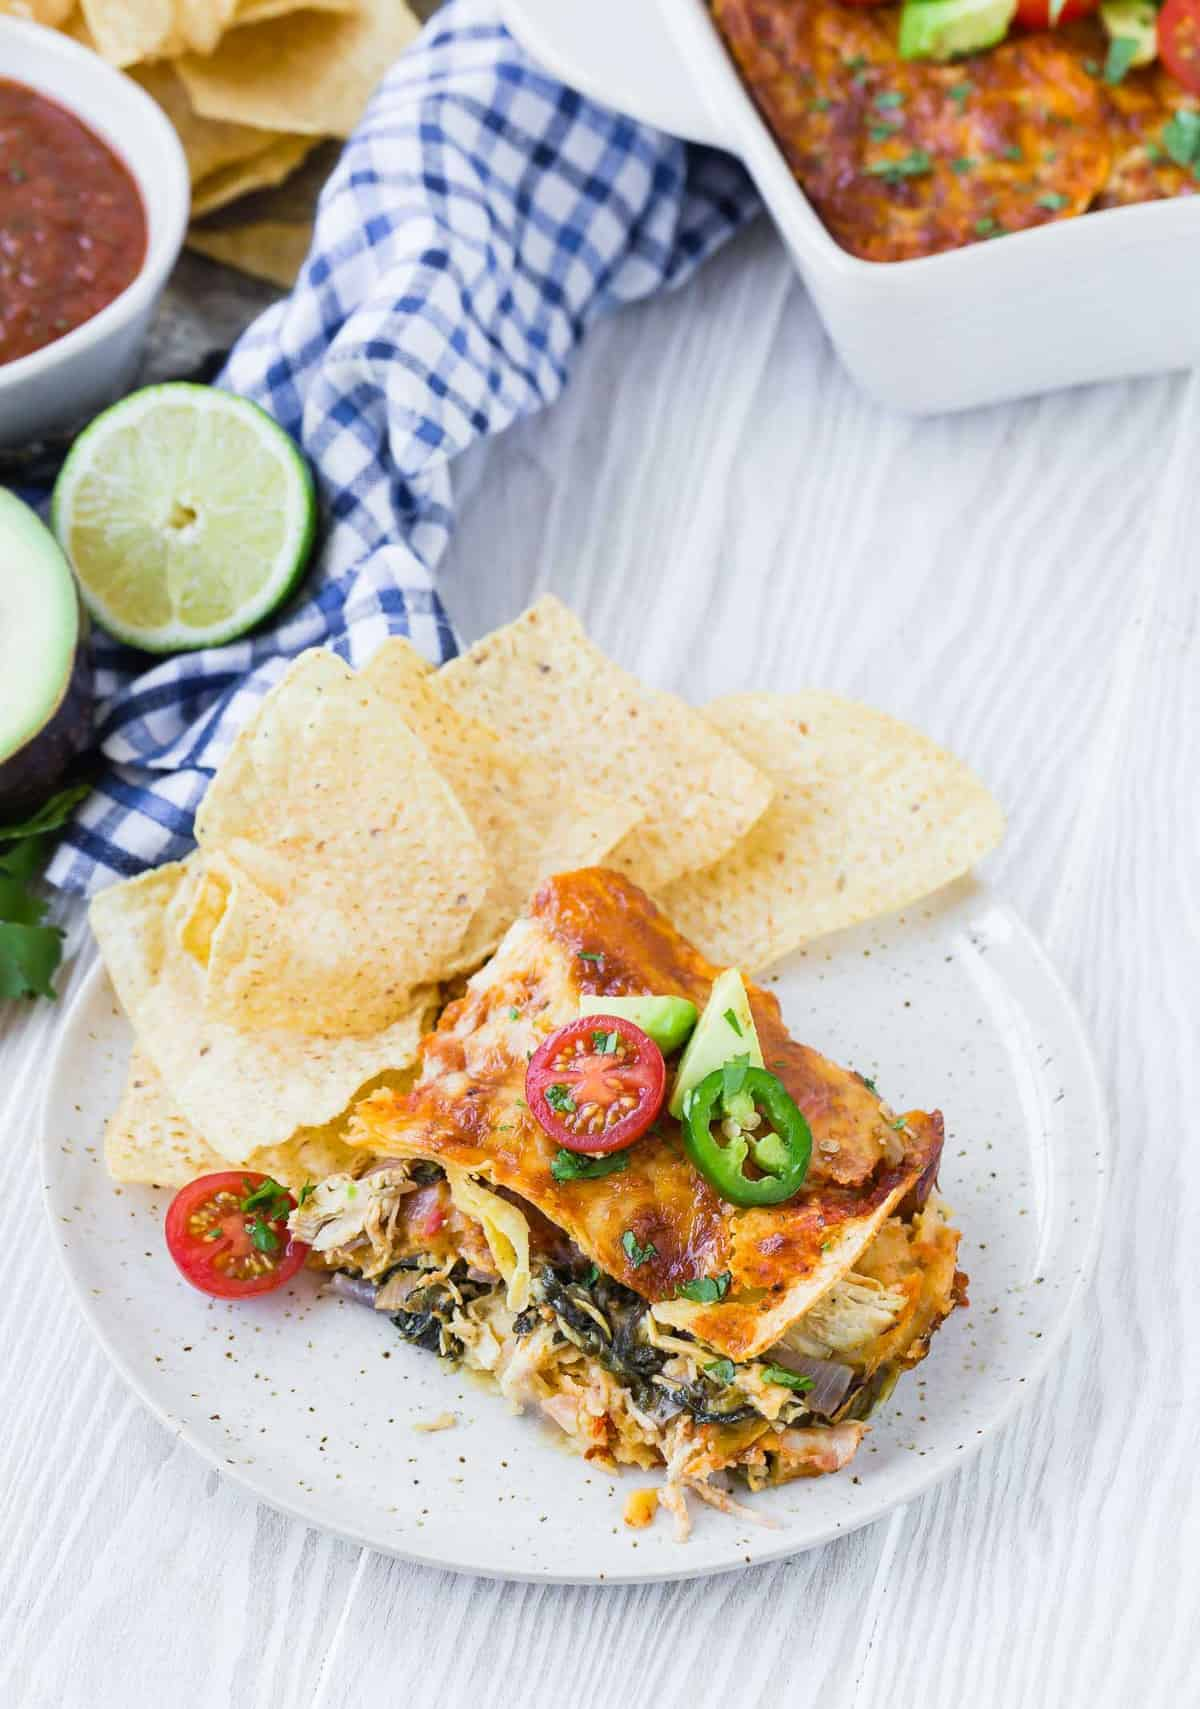 A slice of a layered casserole with tortillas, cheese, and greens, on a plate with chips.